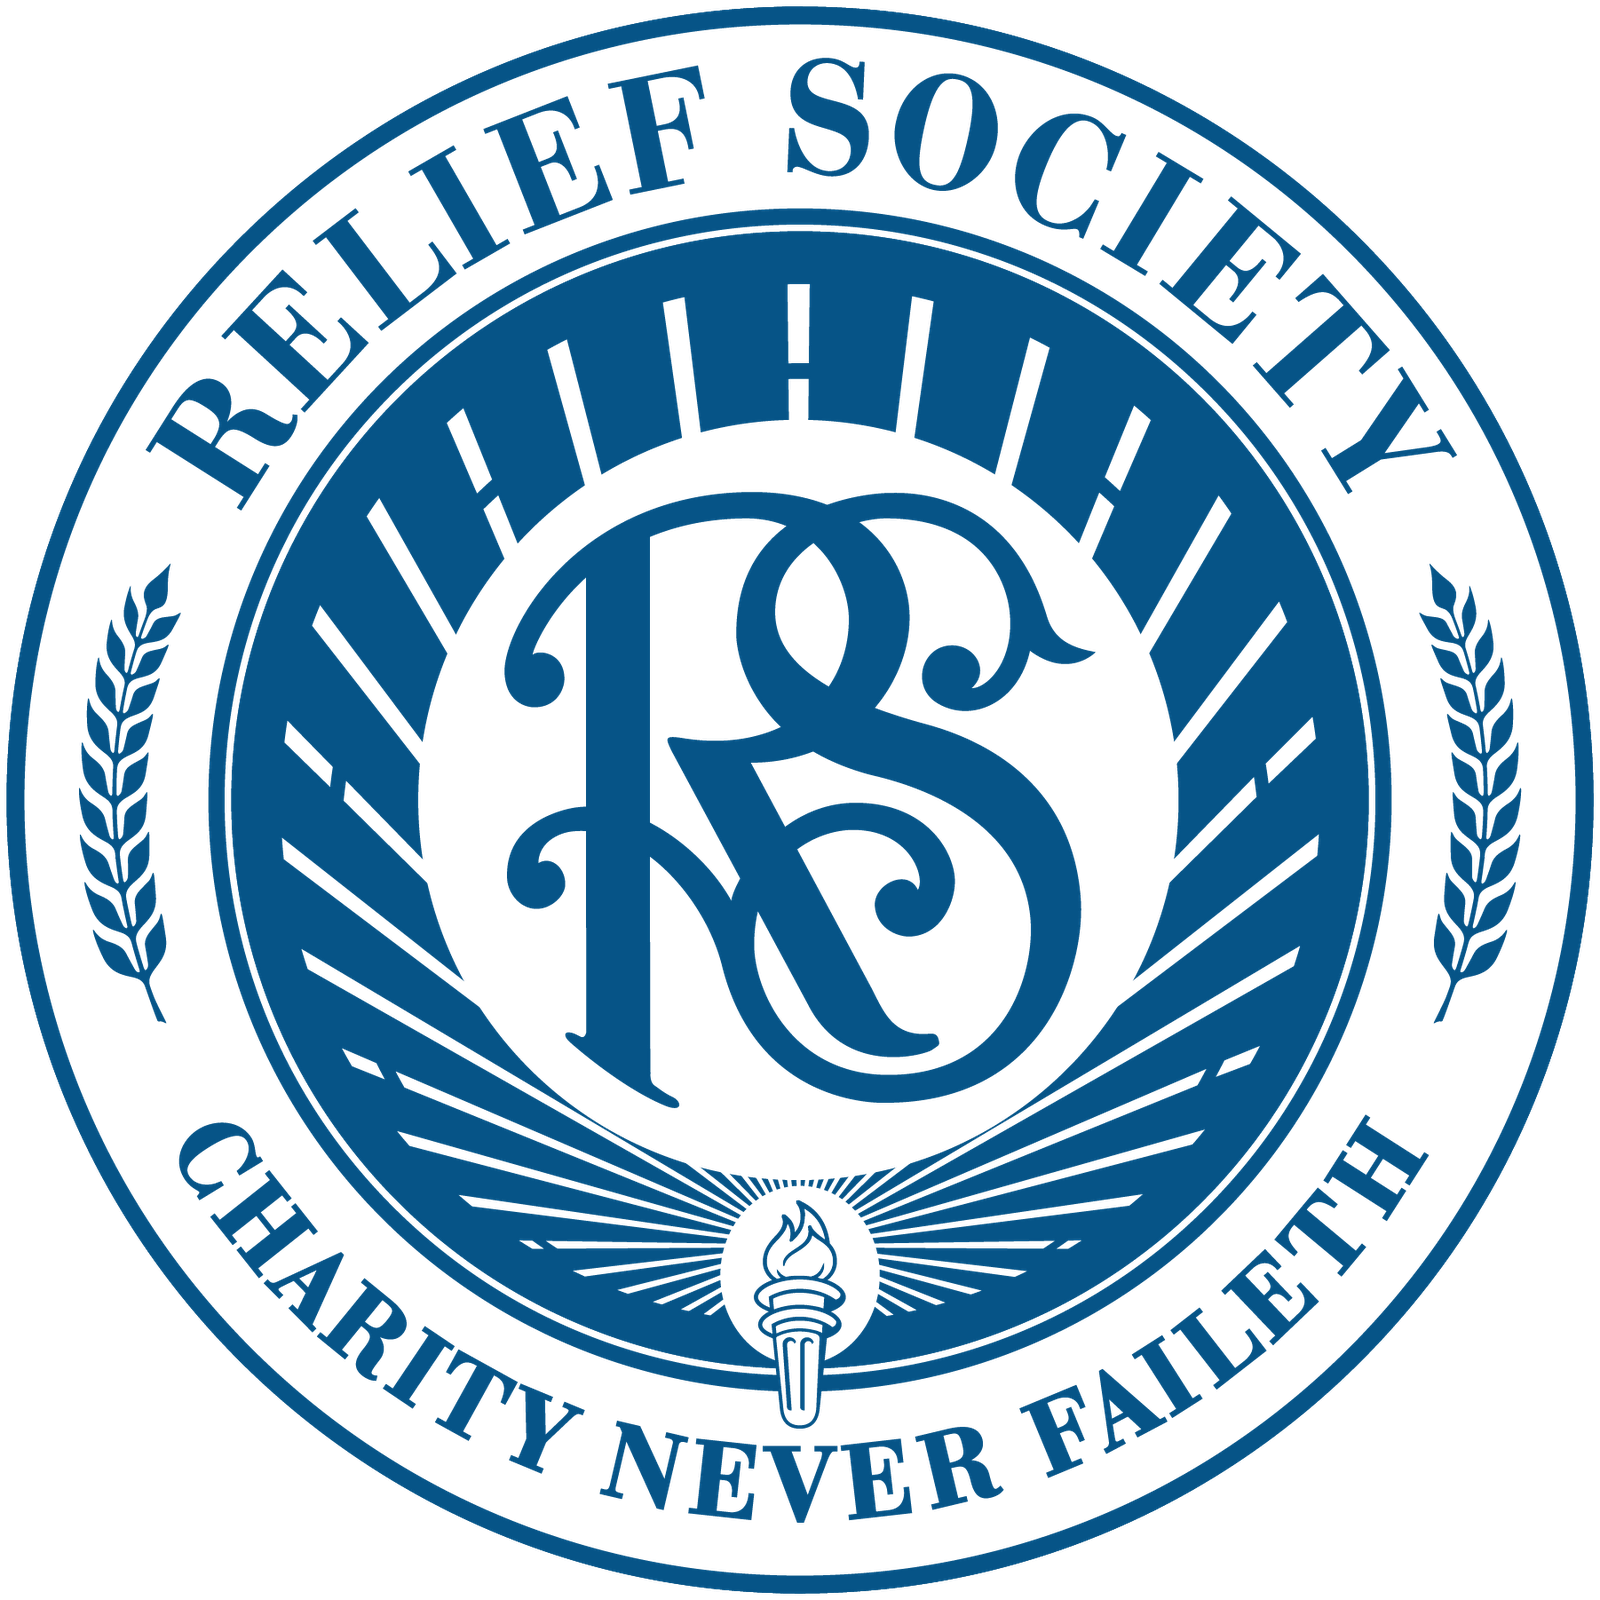 Dw decorative lds logo. R clipart relief society